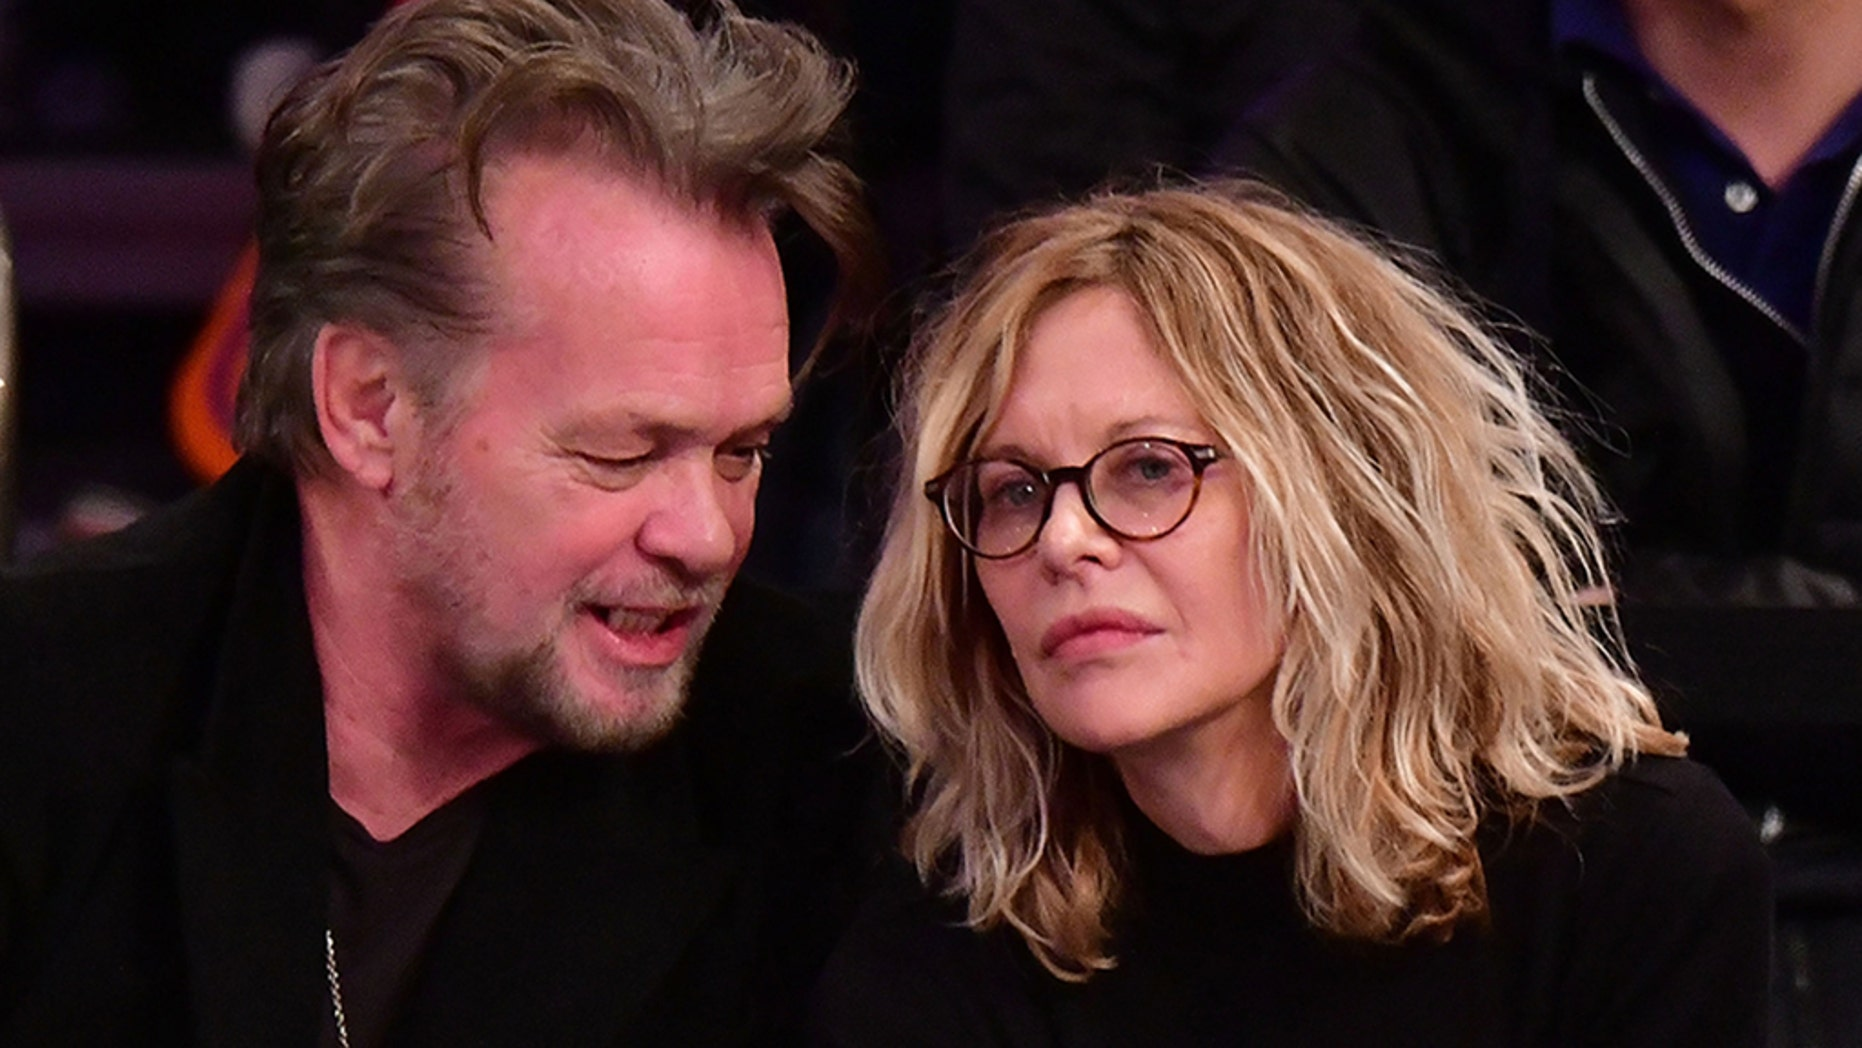 John Mellencamp and Meg Ryan attend the New York Knicks Vs Philadelphia 76ers game at Madison Square Garden on December 25, 2017 in New York City.